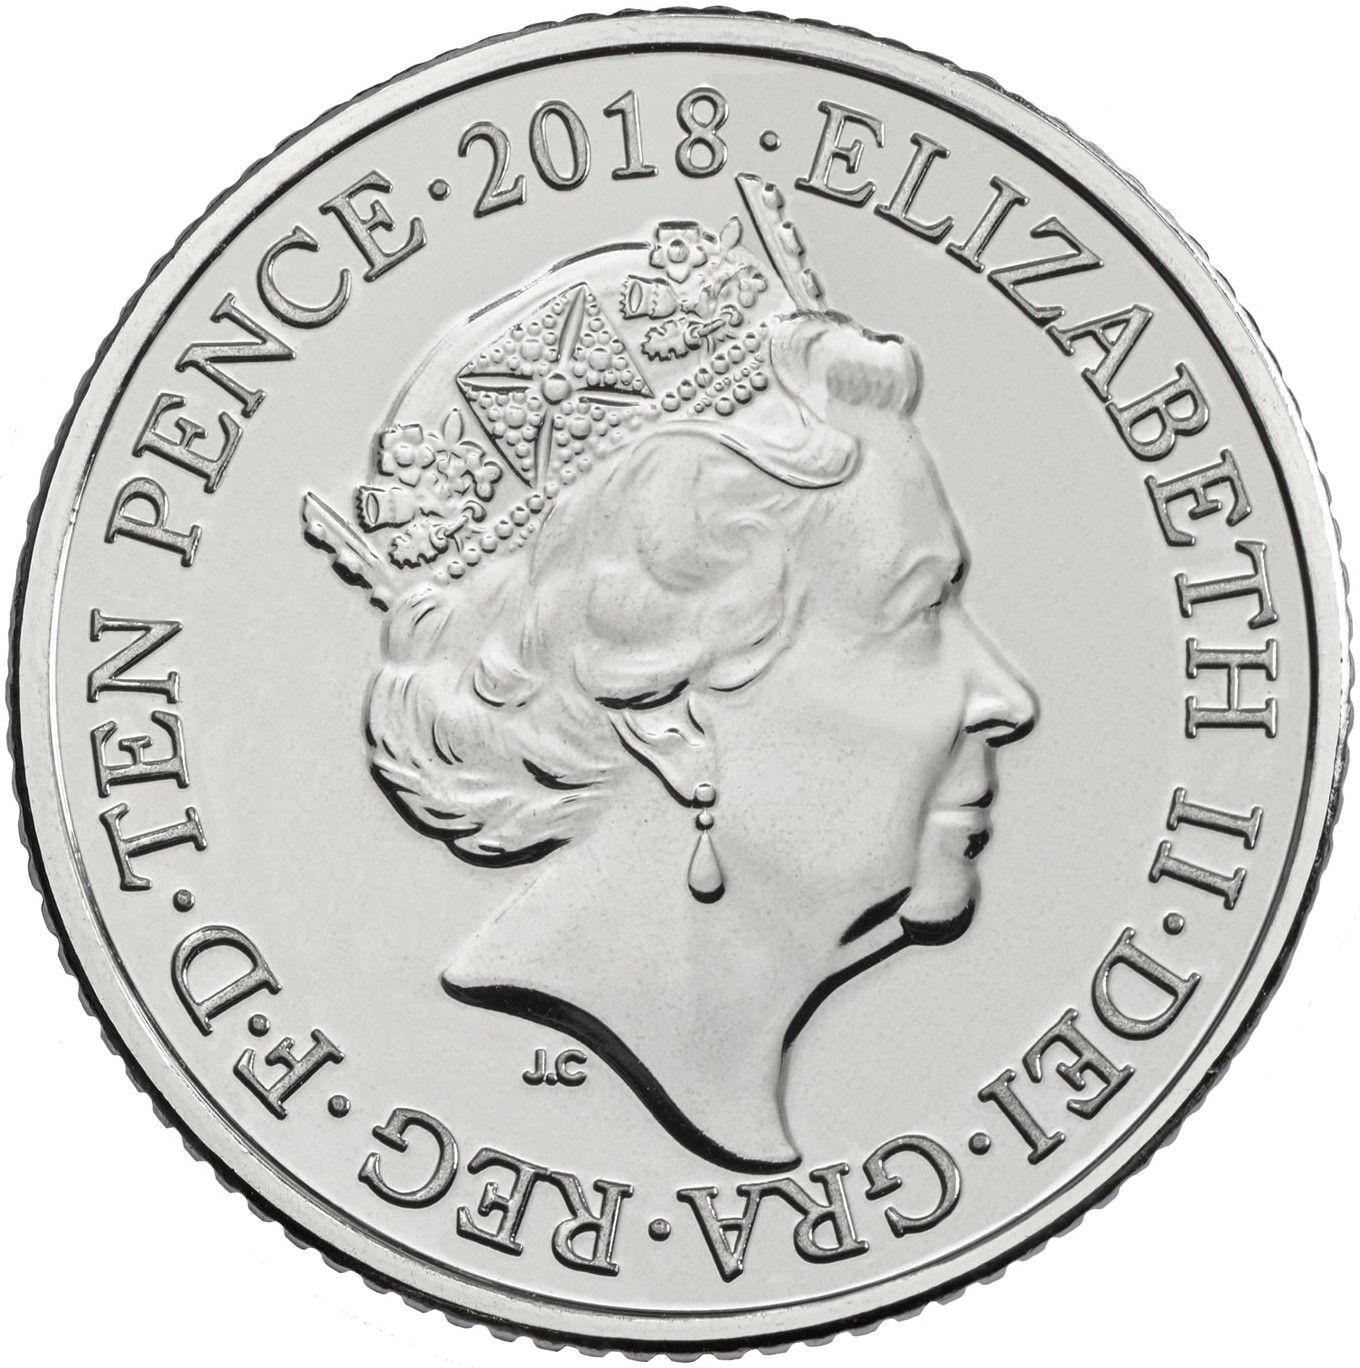 Ten Pence 2018 W - World Wide Web: Photo W - World Wide Web 2018 UK 10p Coin | The Royal Mint